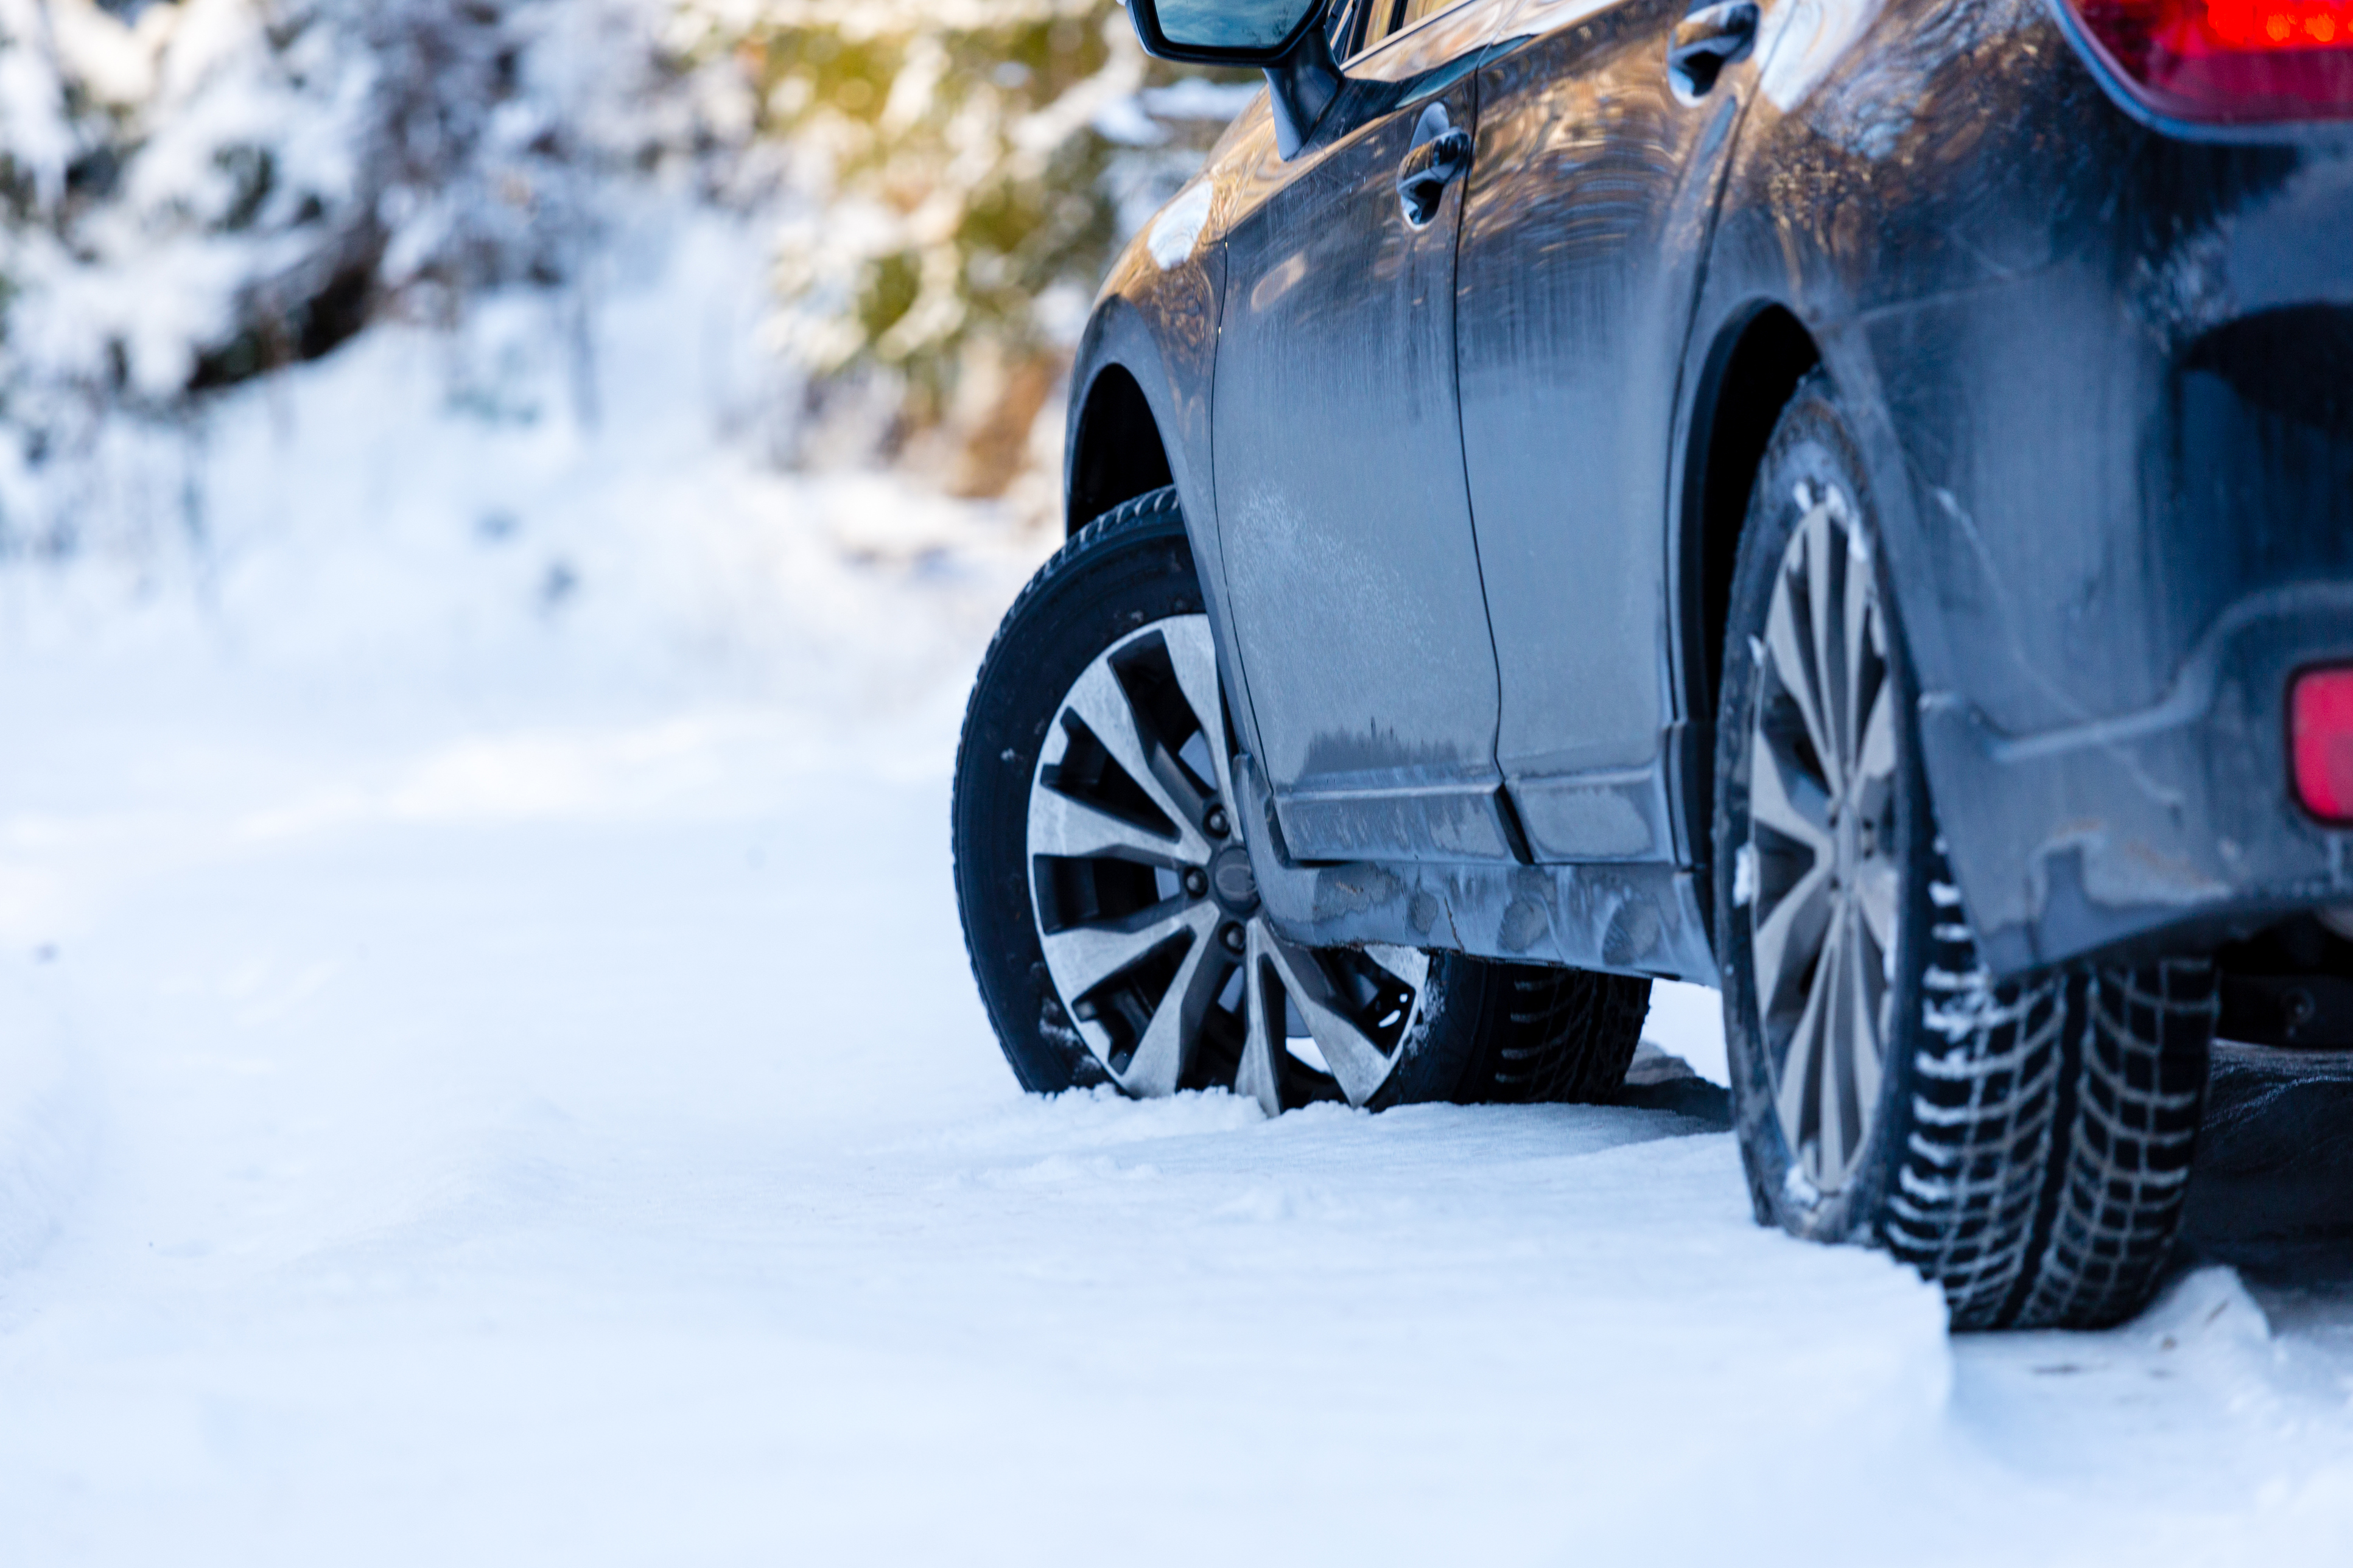 Keeping Your Vehicle's Safety Sensors Clean During the Winter